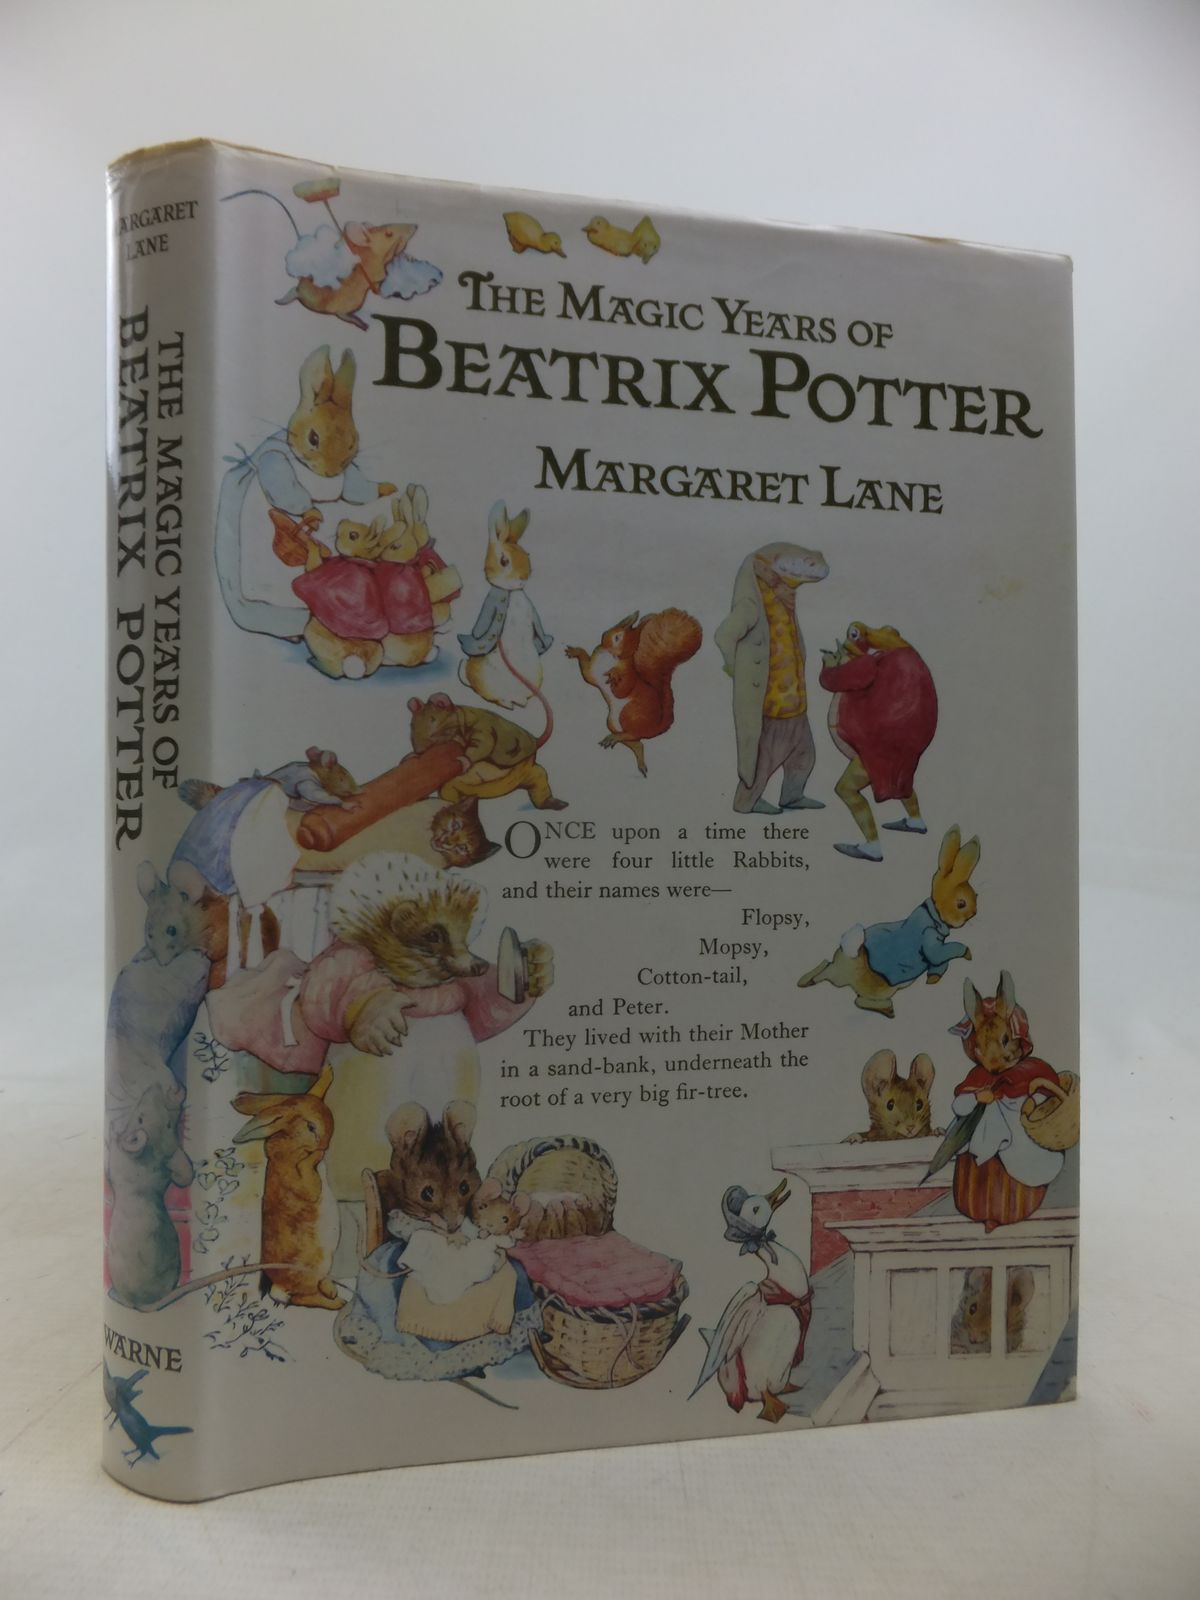 Photo of THE MAGIC YEARS OF BEATRIX POTTER written by Lane, Margaret illustrated by Potter, Beatrix published by Frederick Warne (Publishers) Ltd. (STOCK CODE: 1809631)  for sale by Stella & Rose's Books